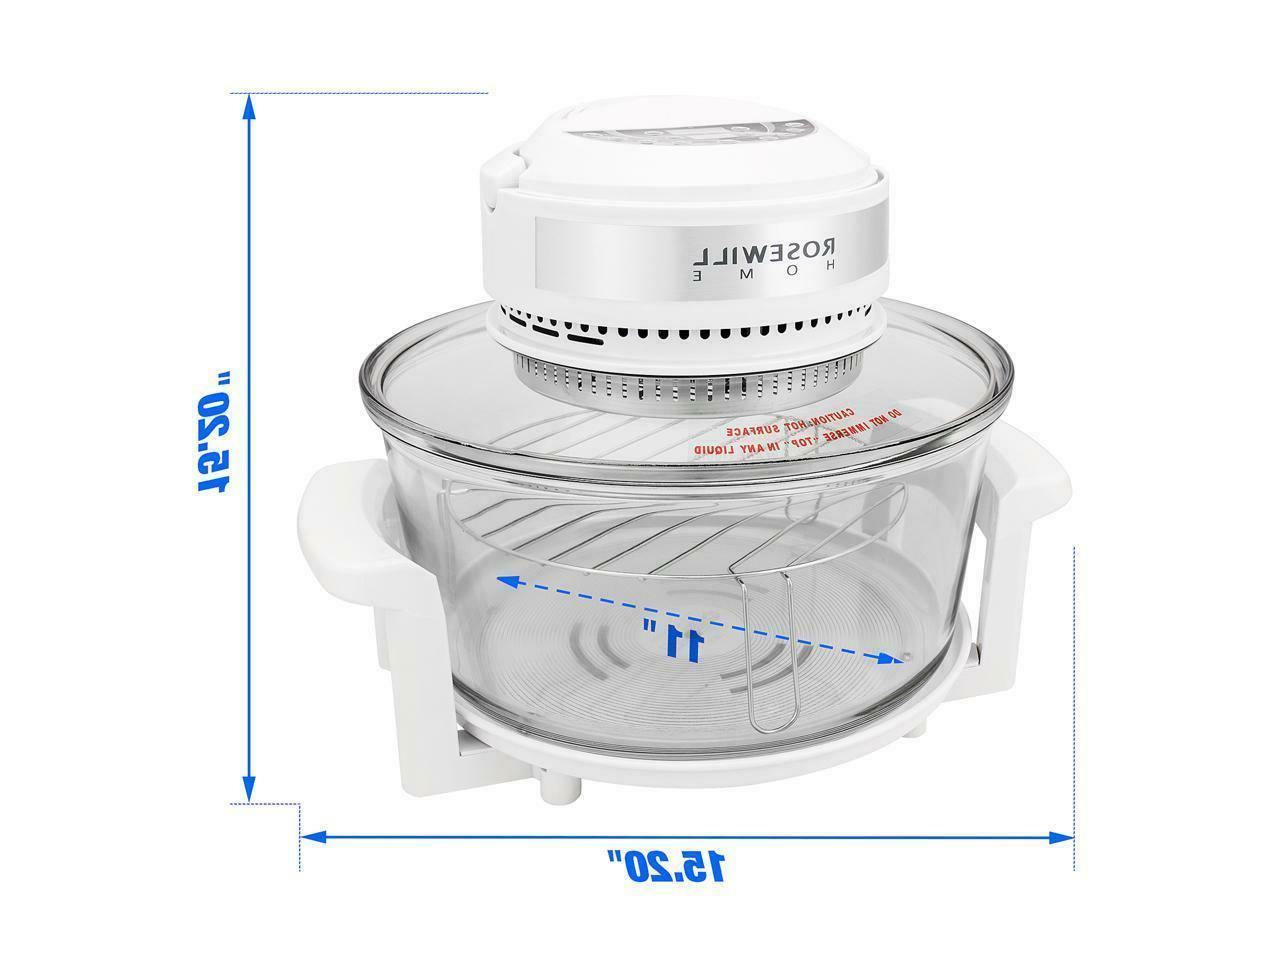 Rosewill Digital Infrared Halogen Convection RHCO-16001